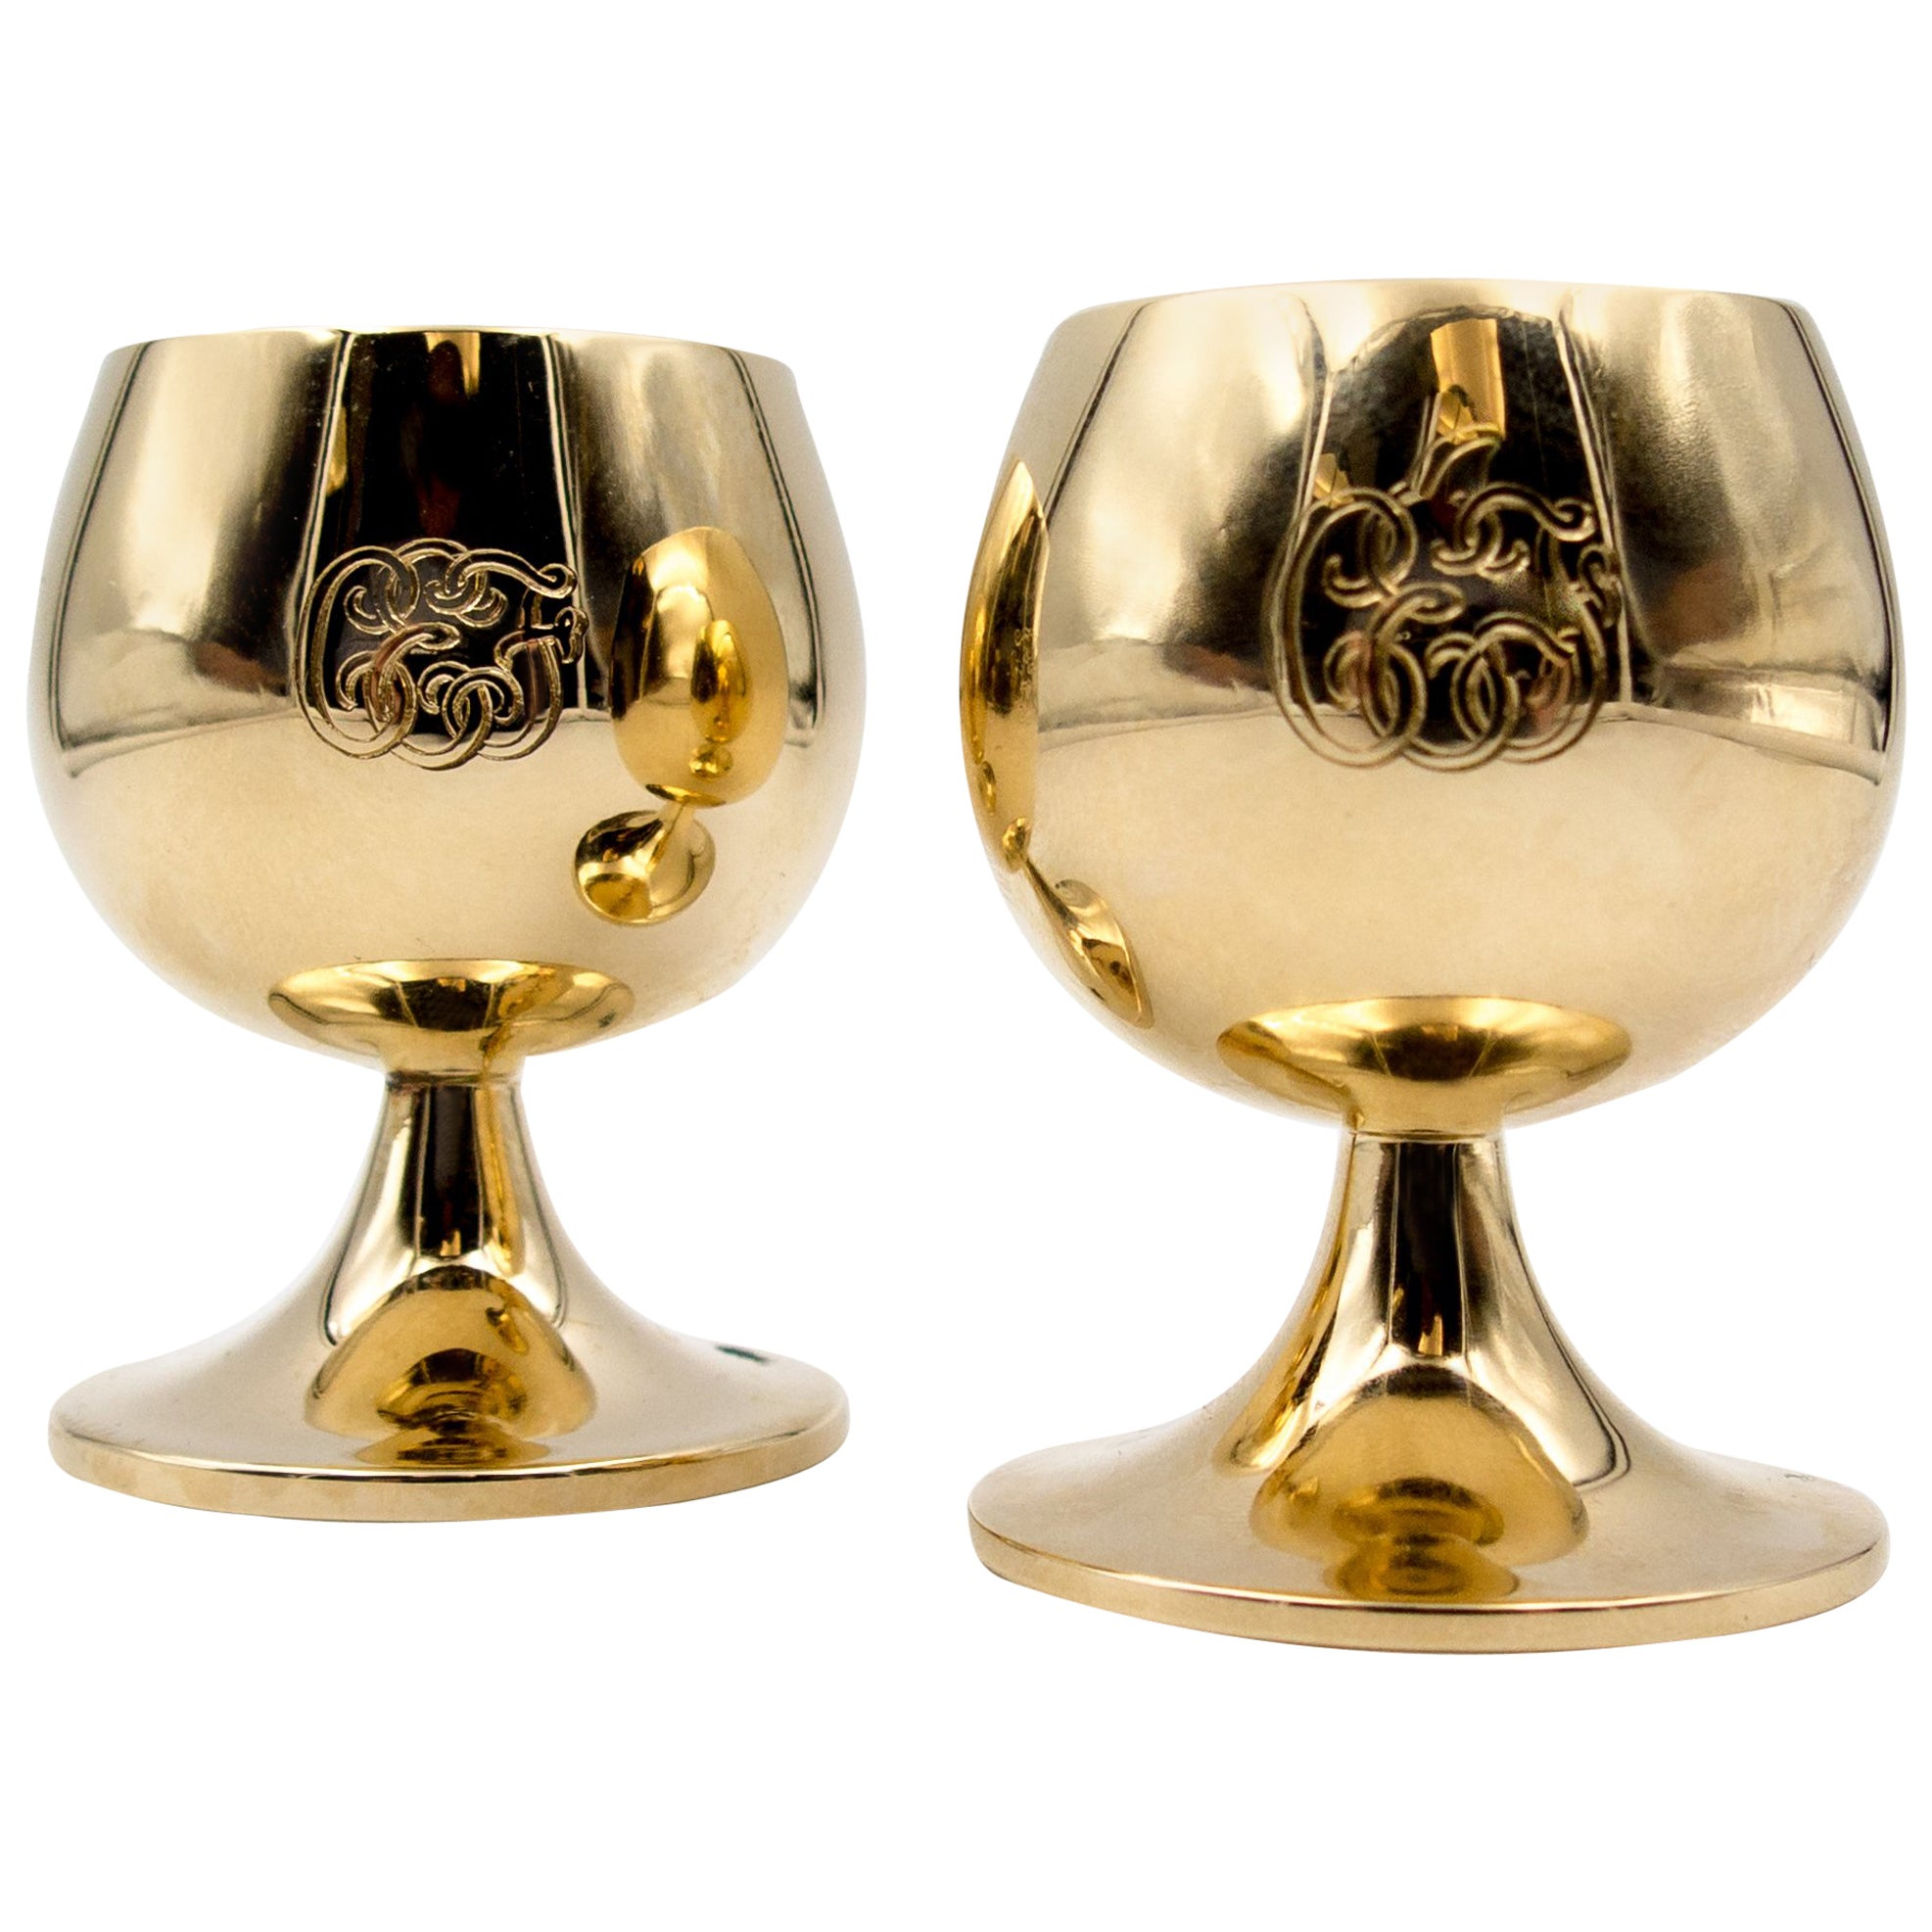 Tiffany & Co Gold Celebration Cups